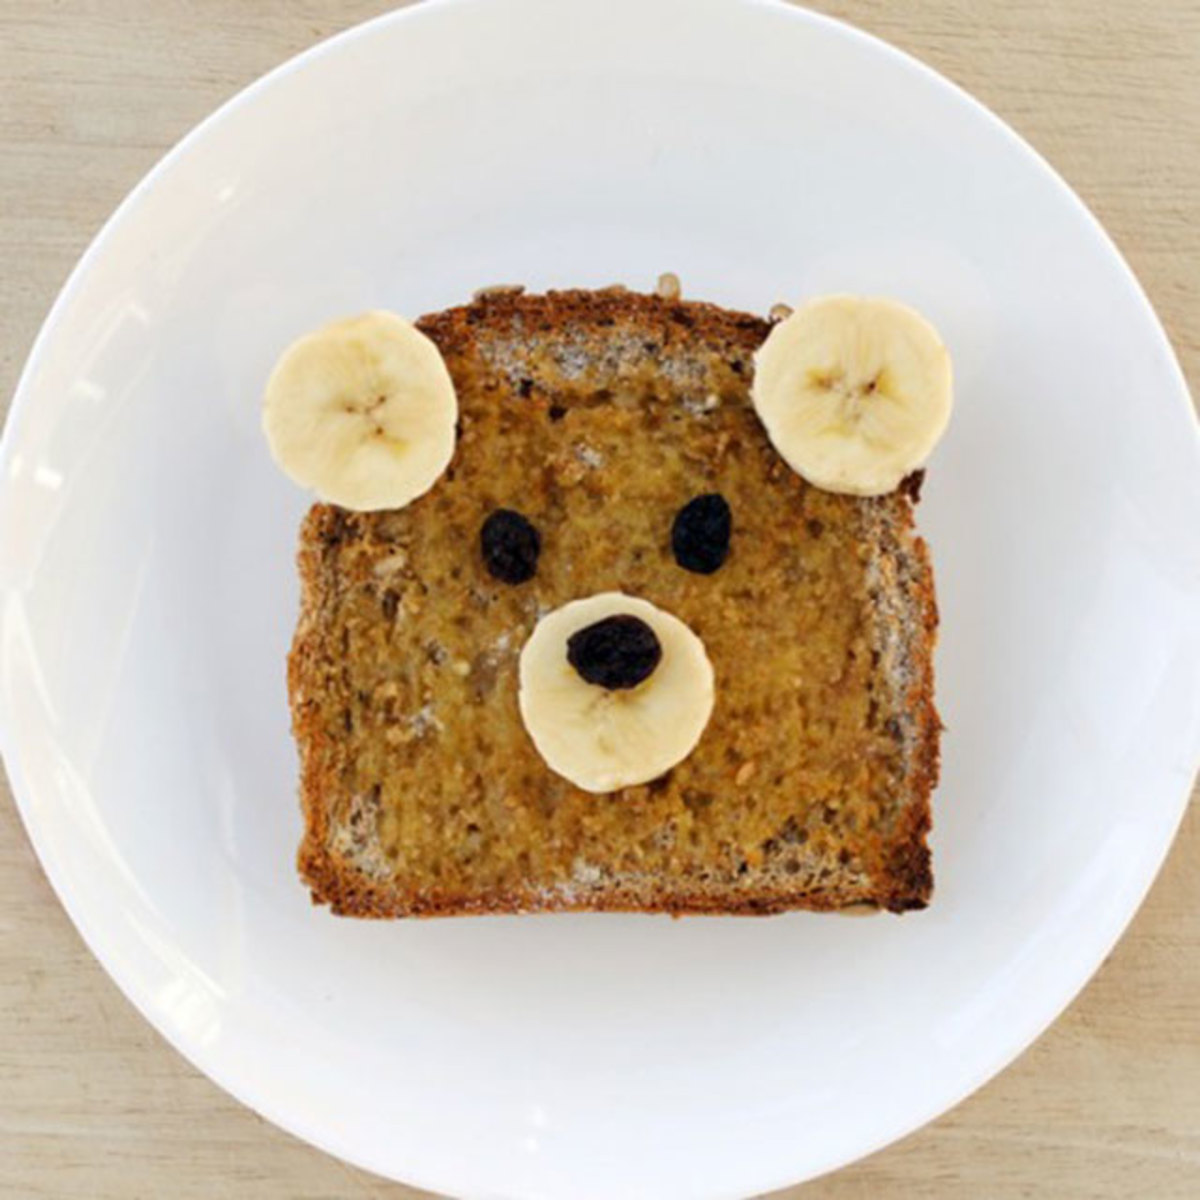 Peanut Butter and Banana Sandwich Bear